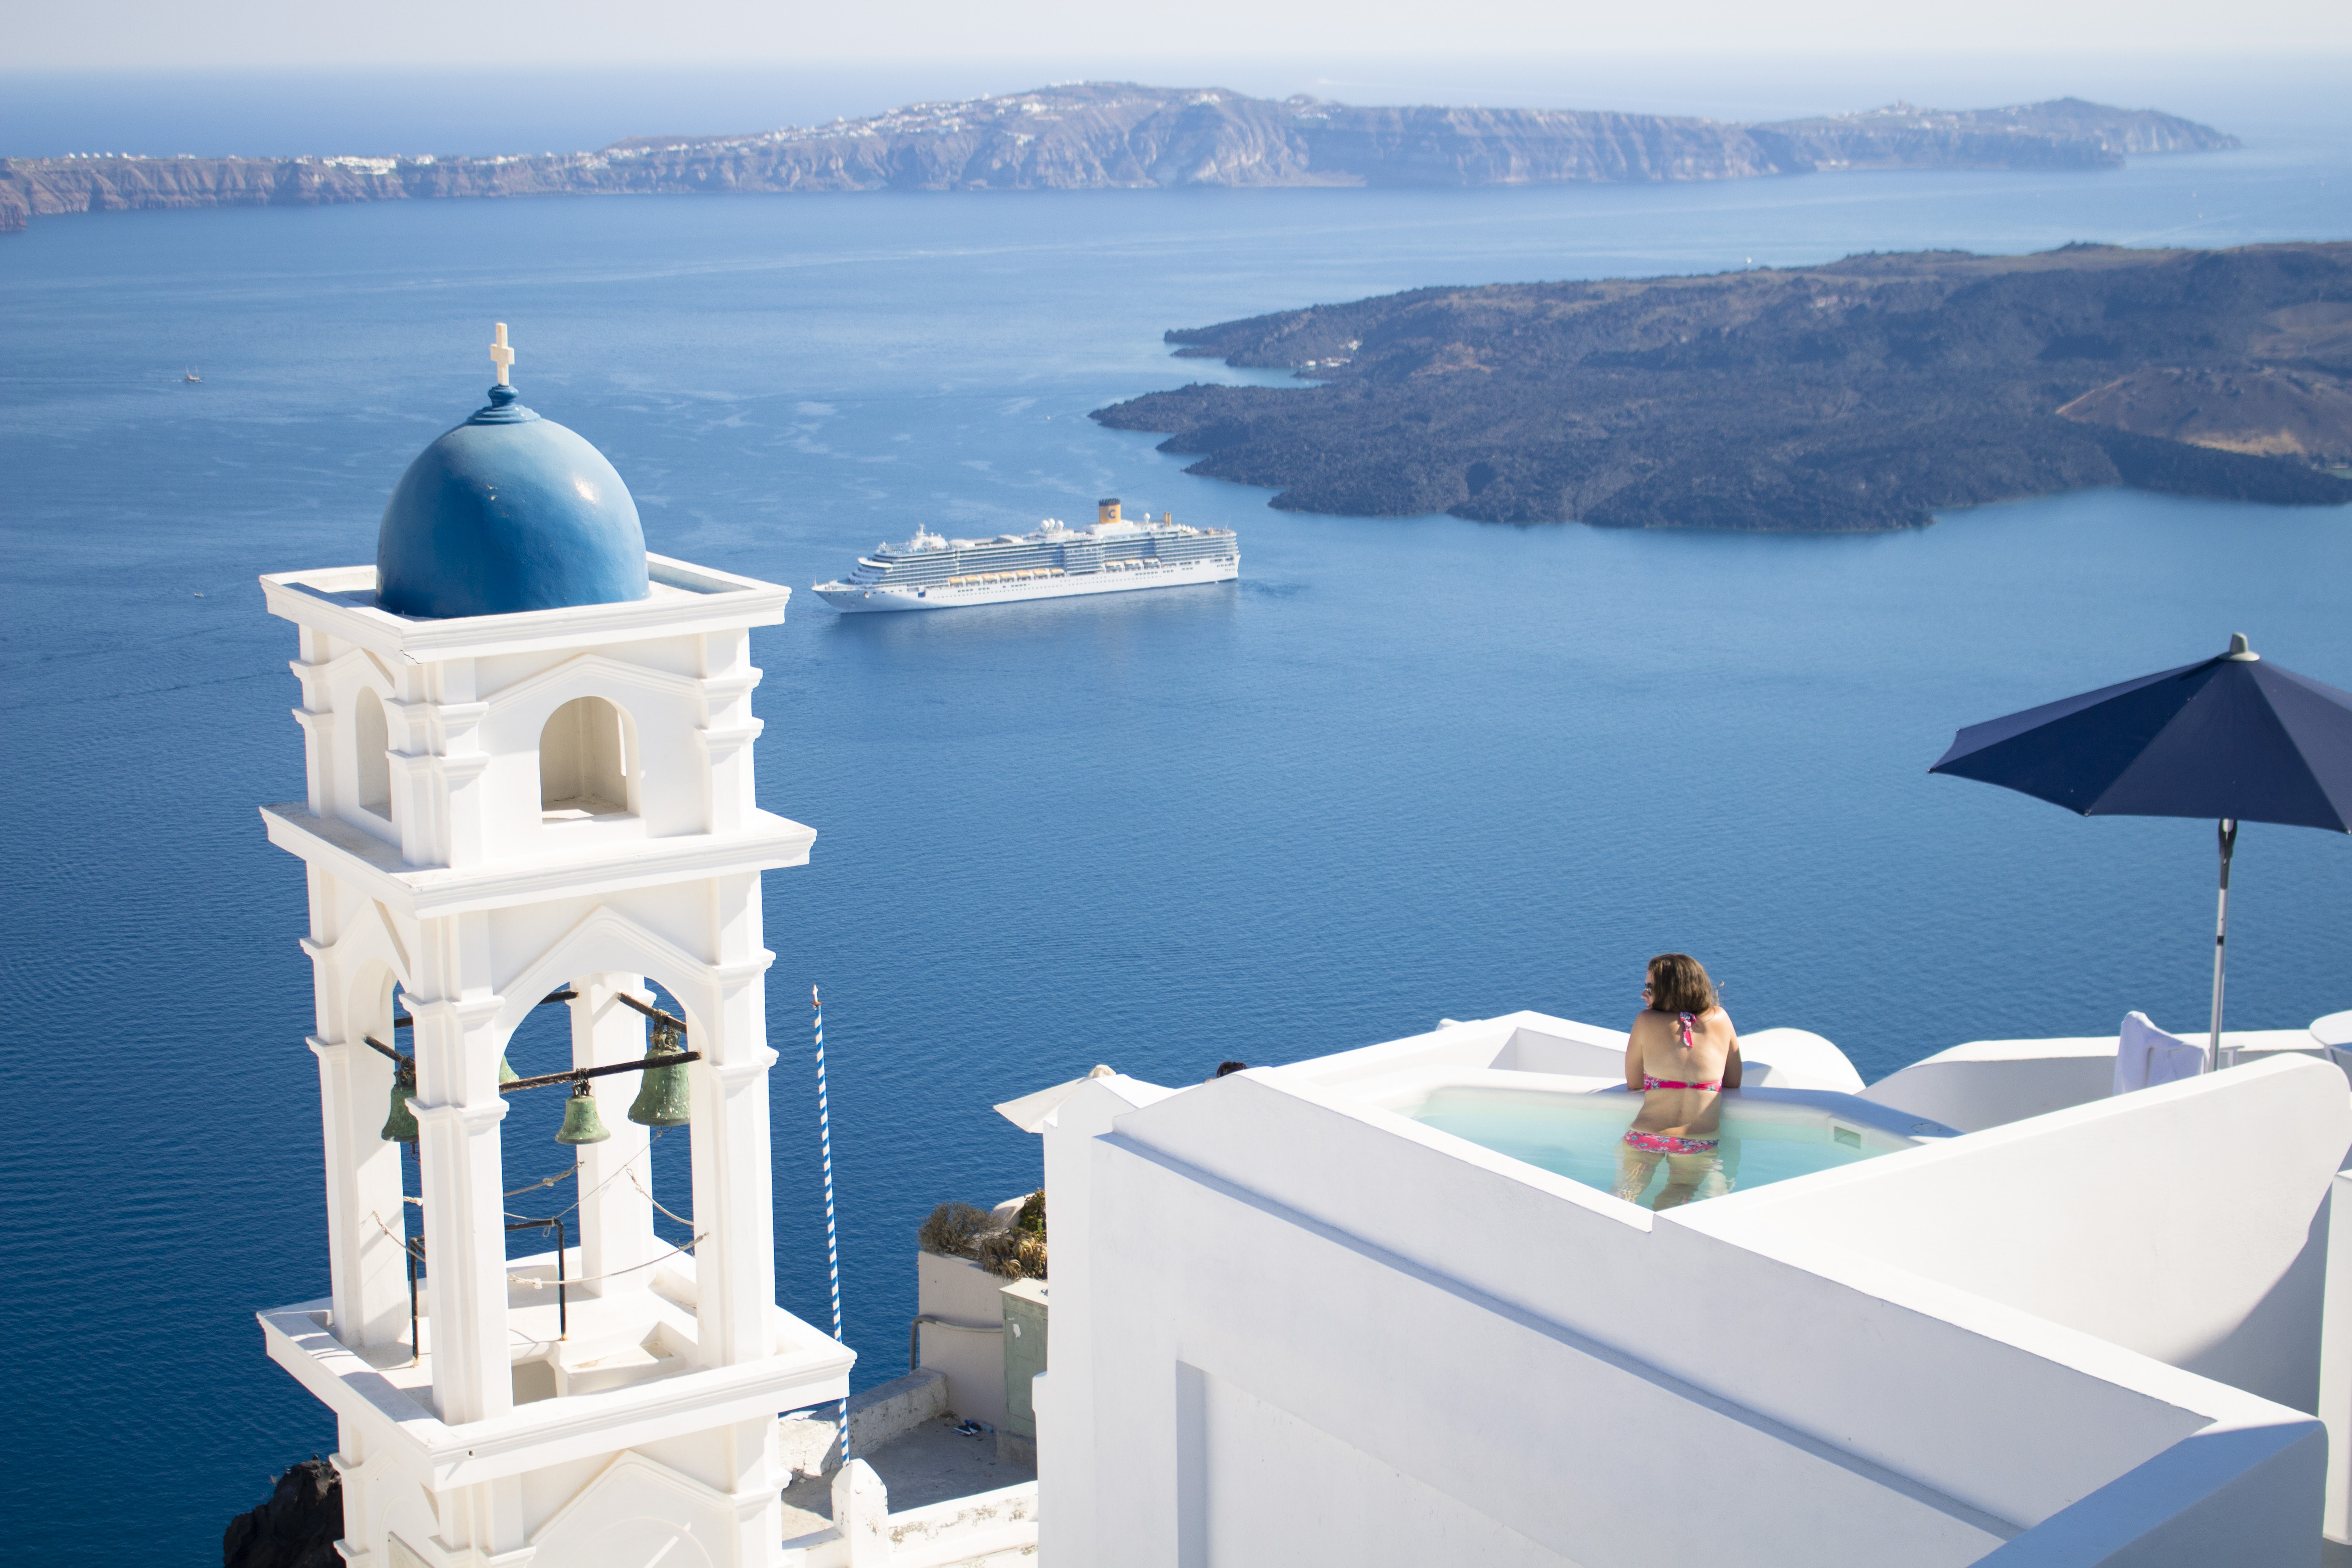 A woman in a swimsuit stands up in a tiny pool at the top of a white building in a classic Greek seaside town